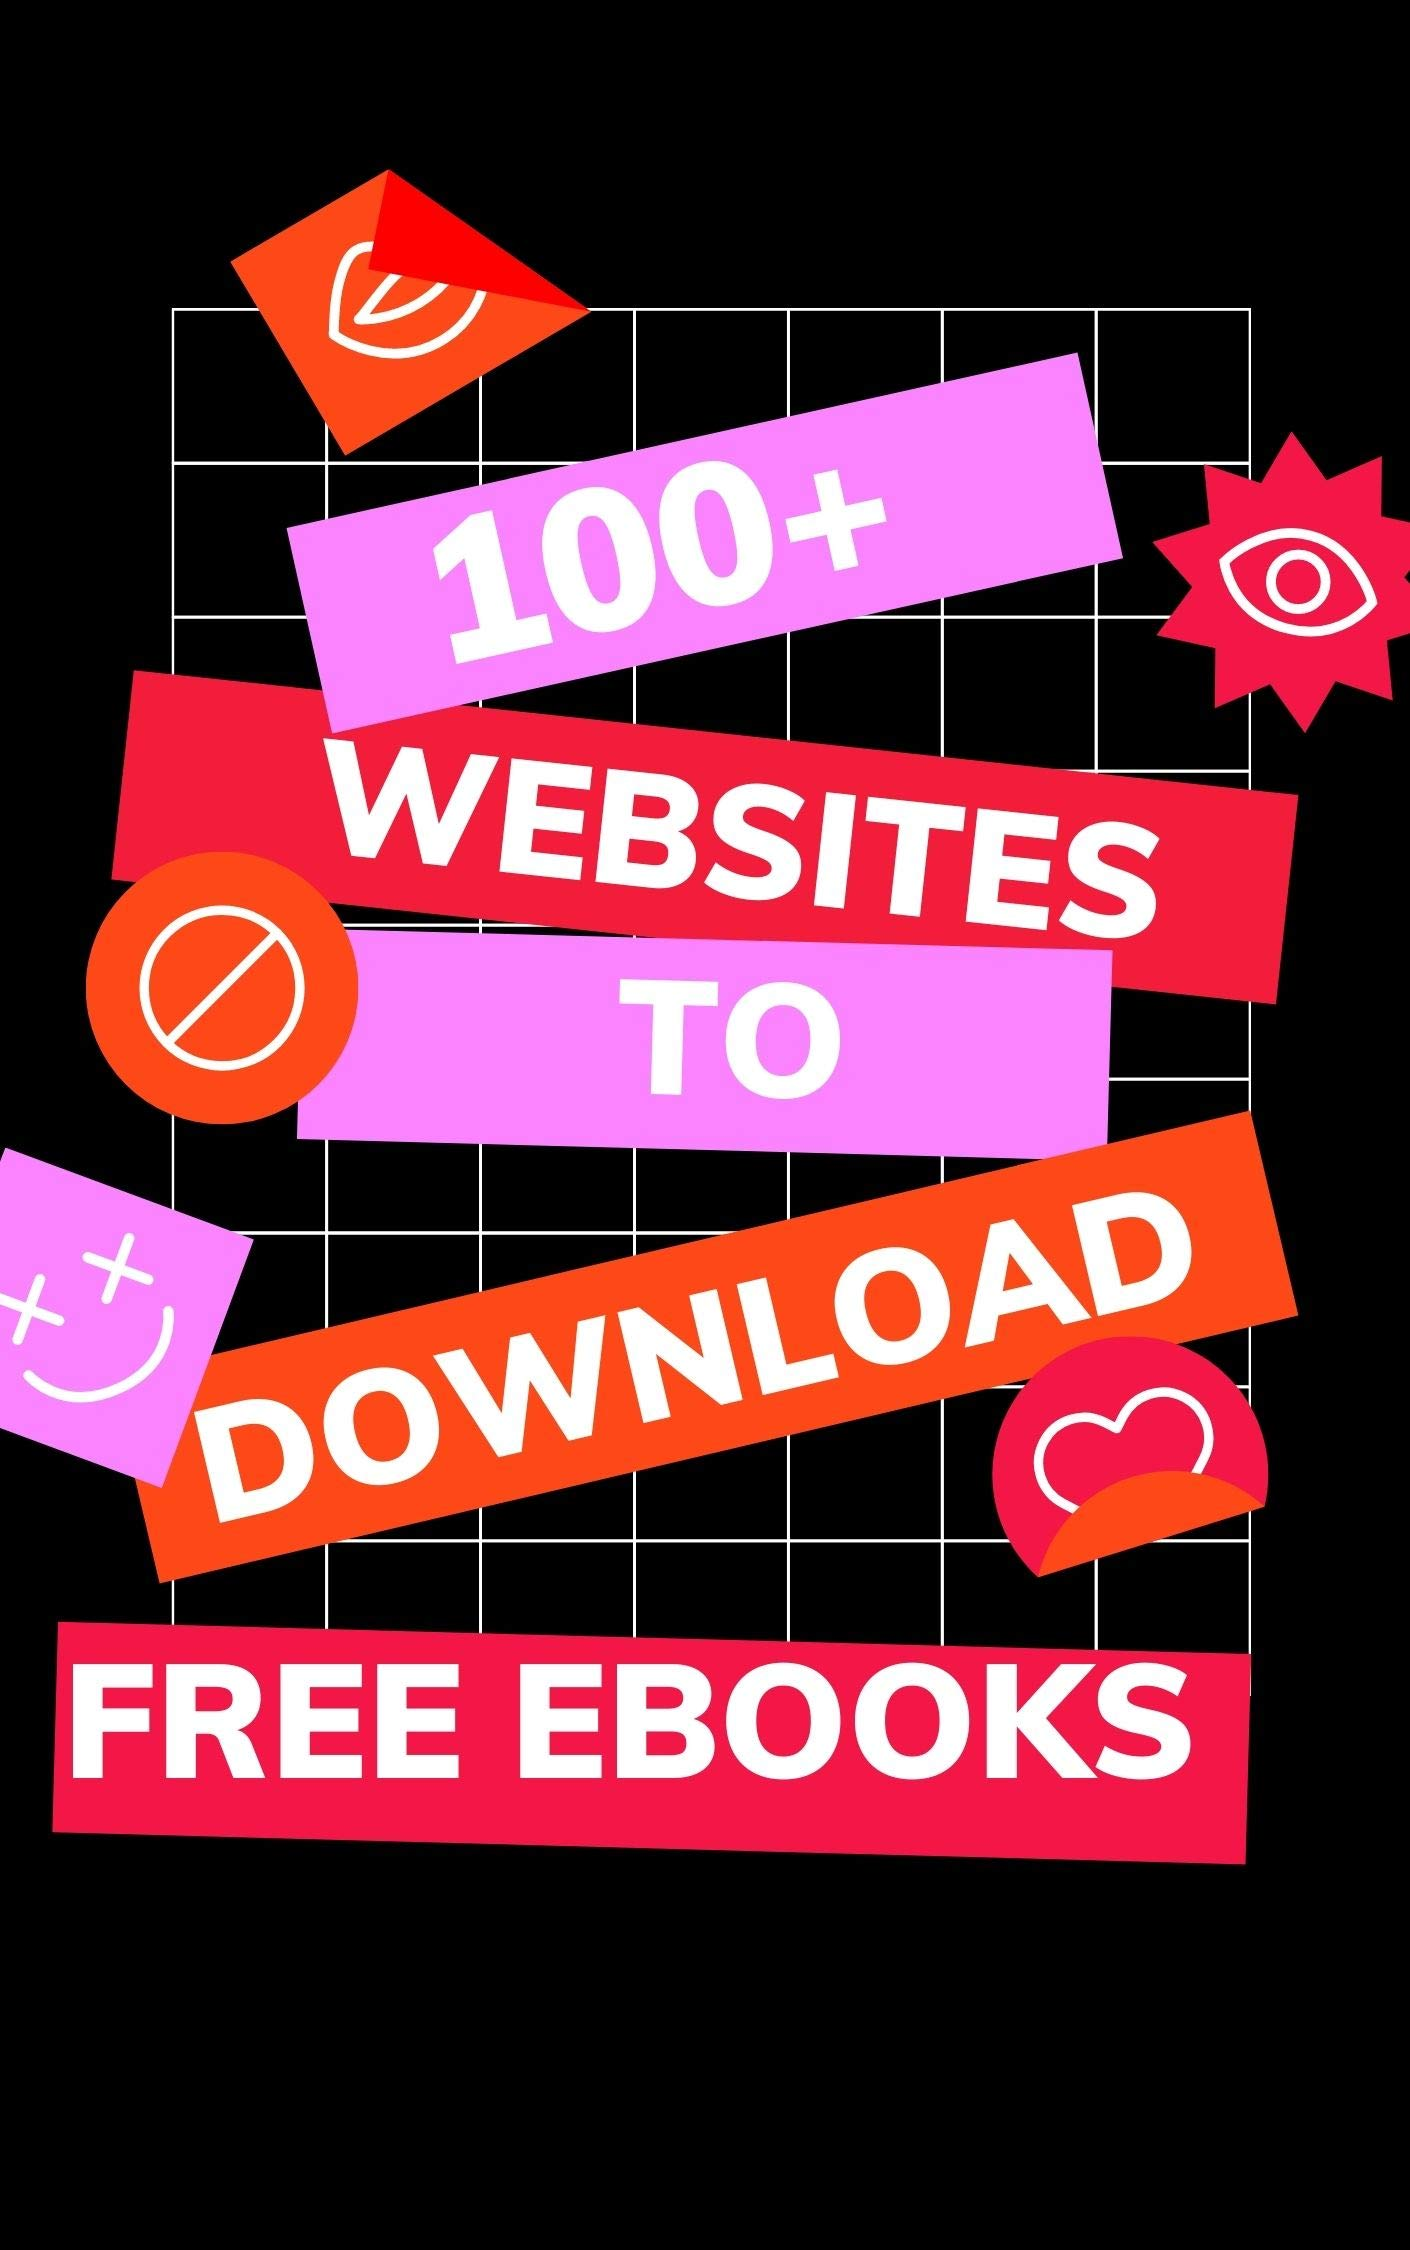 100+ Websites To Download Free Ebooks: Millions of eBooks